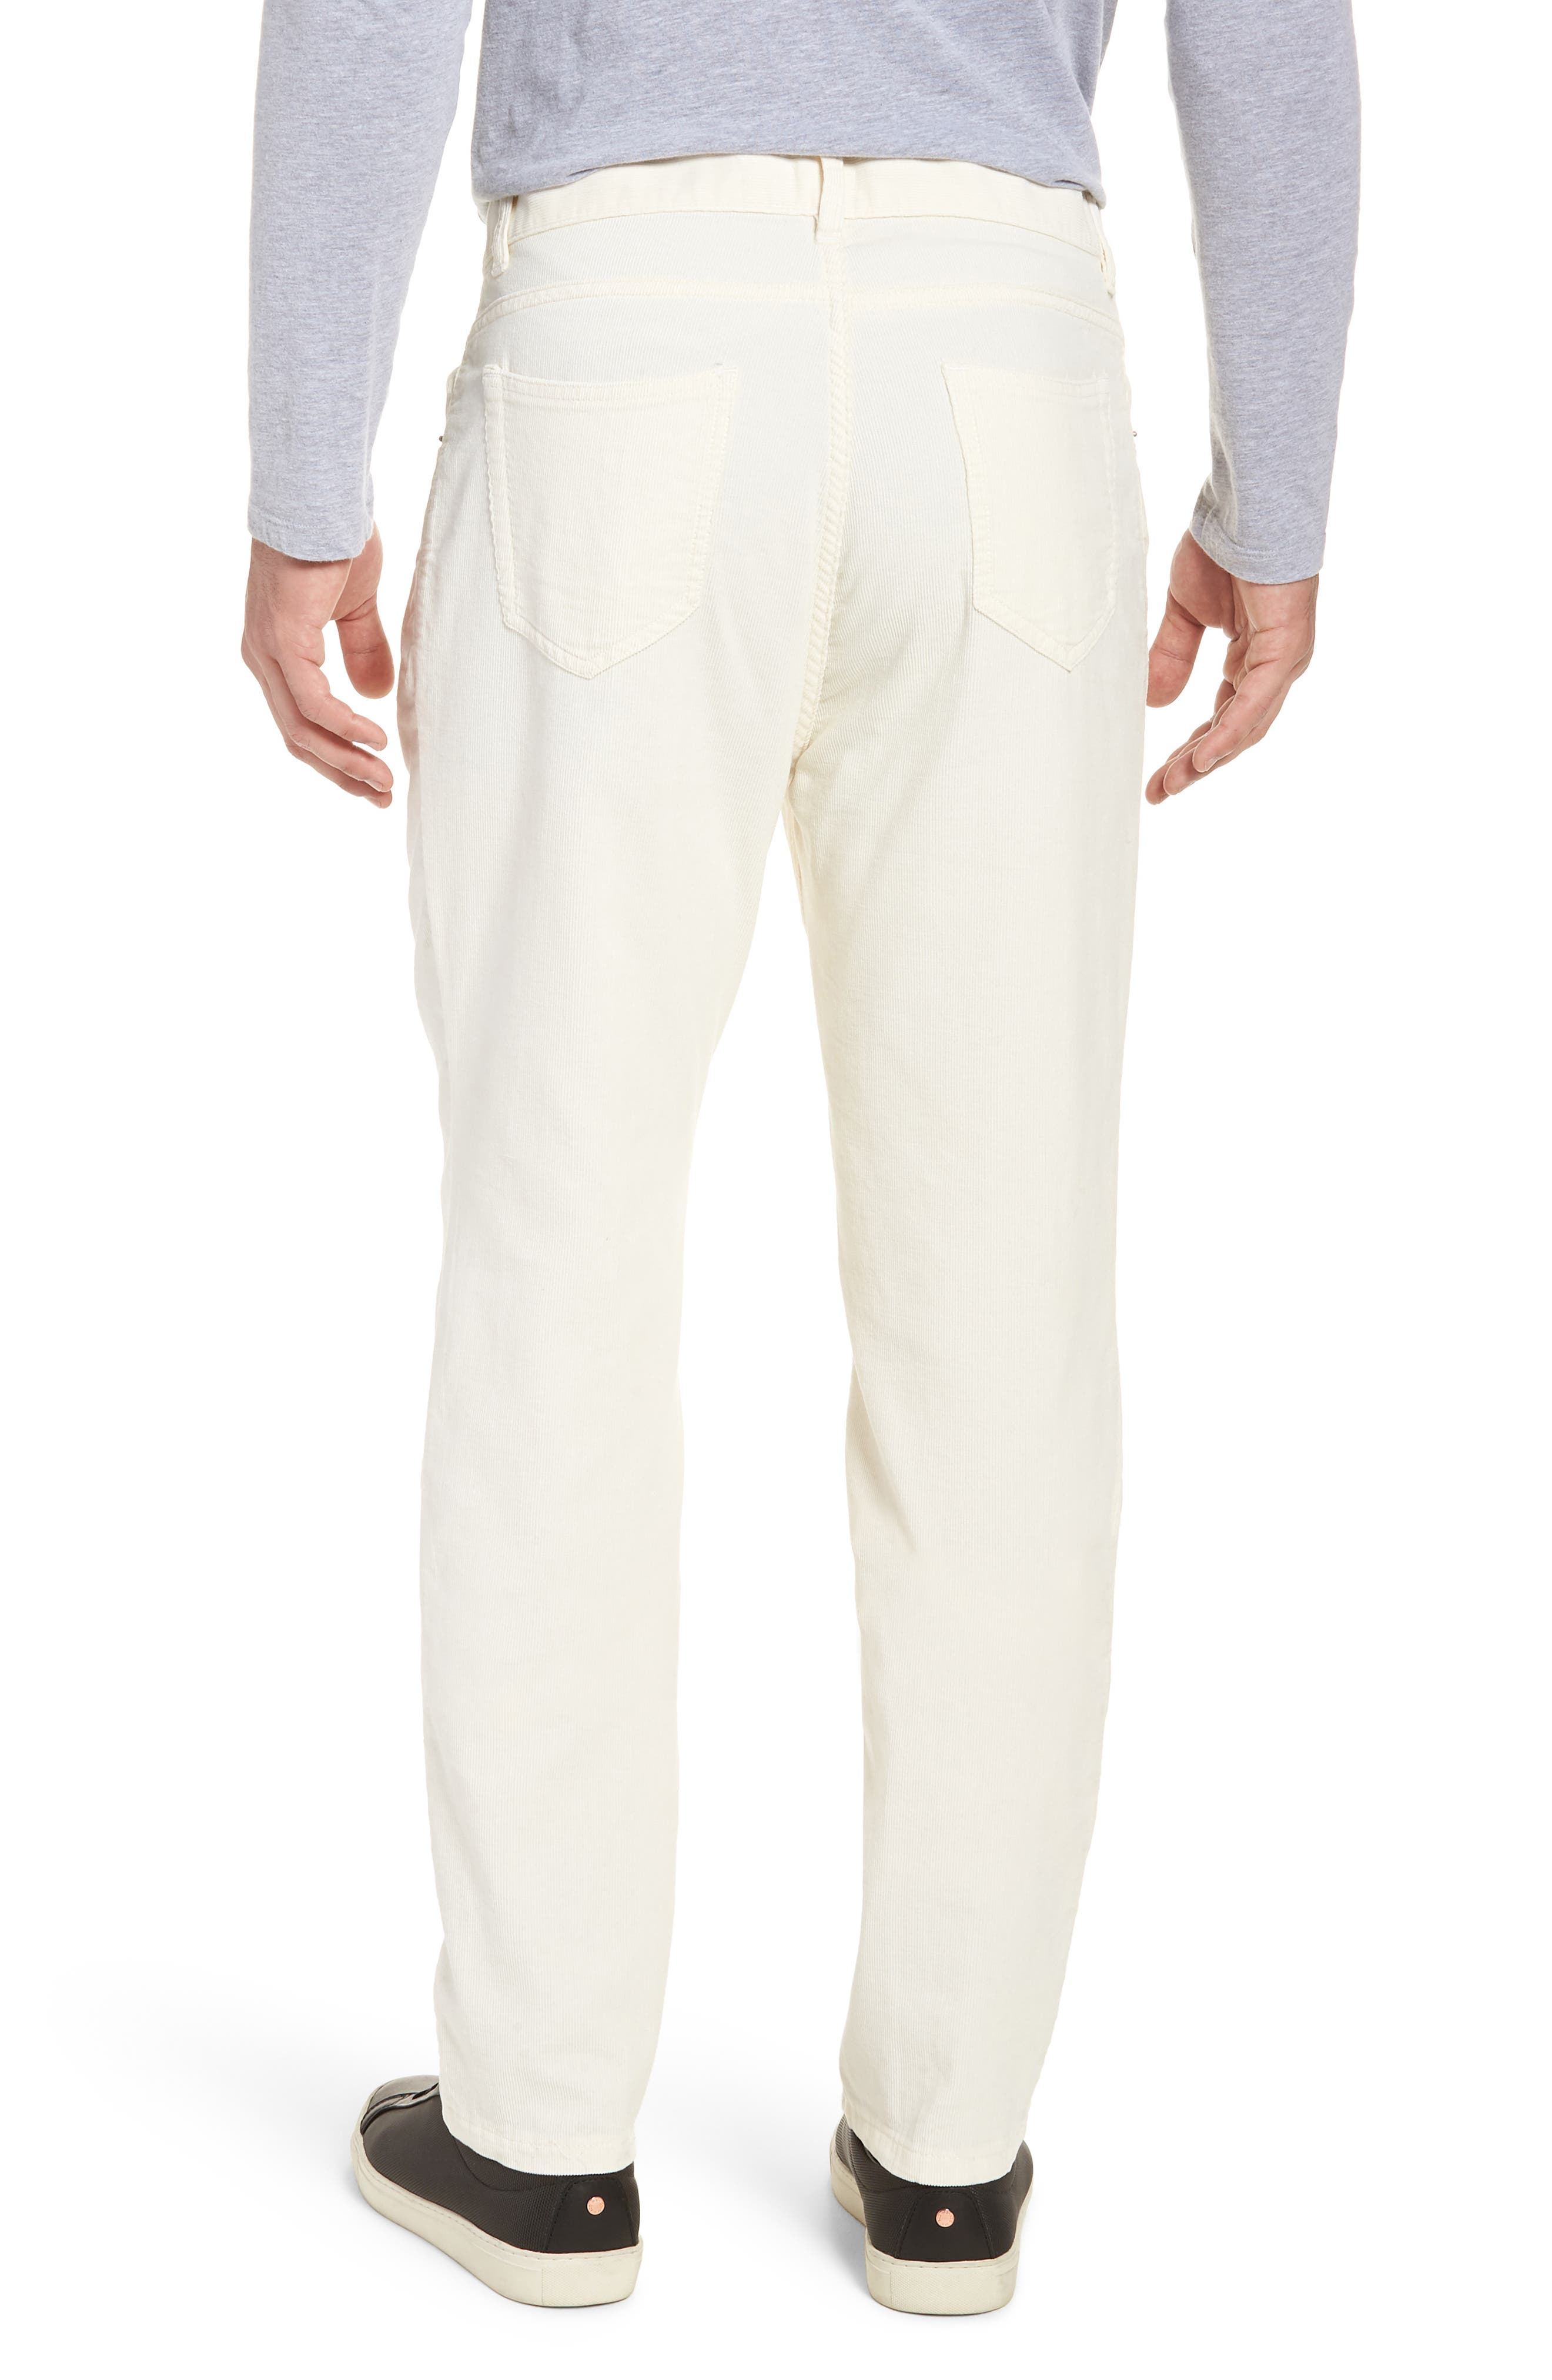 Q Cord Trousers,                             Alternate thumbnail 2, color,                             Natural